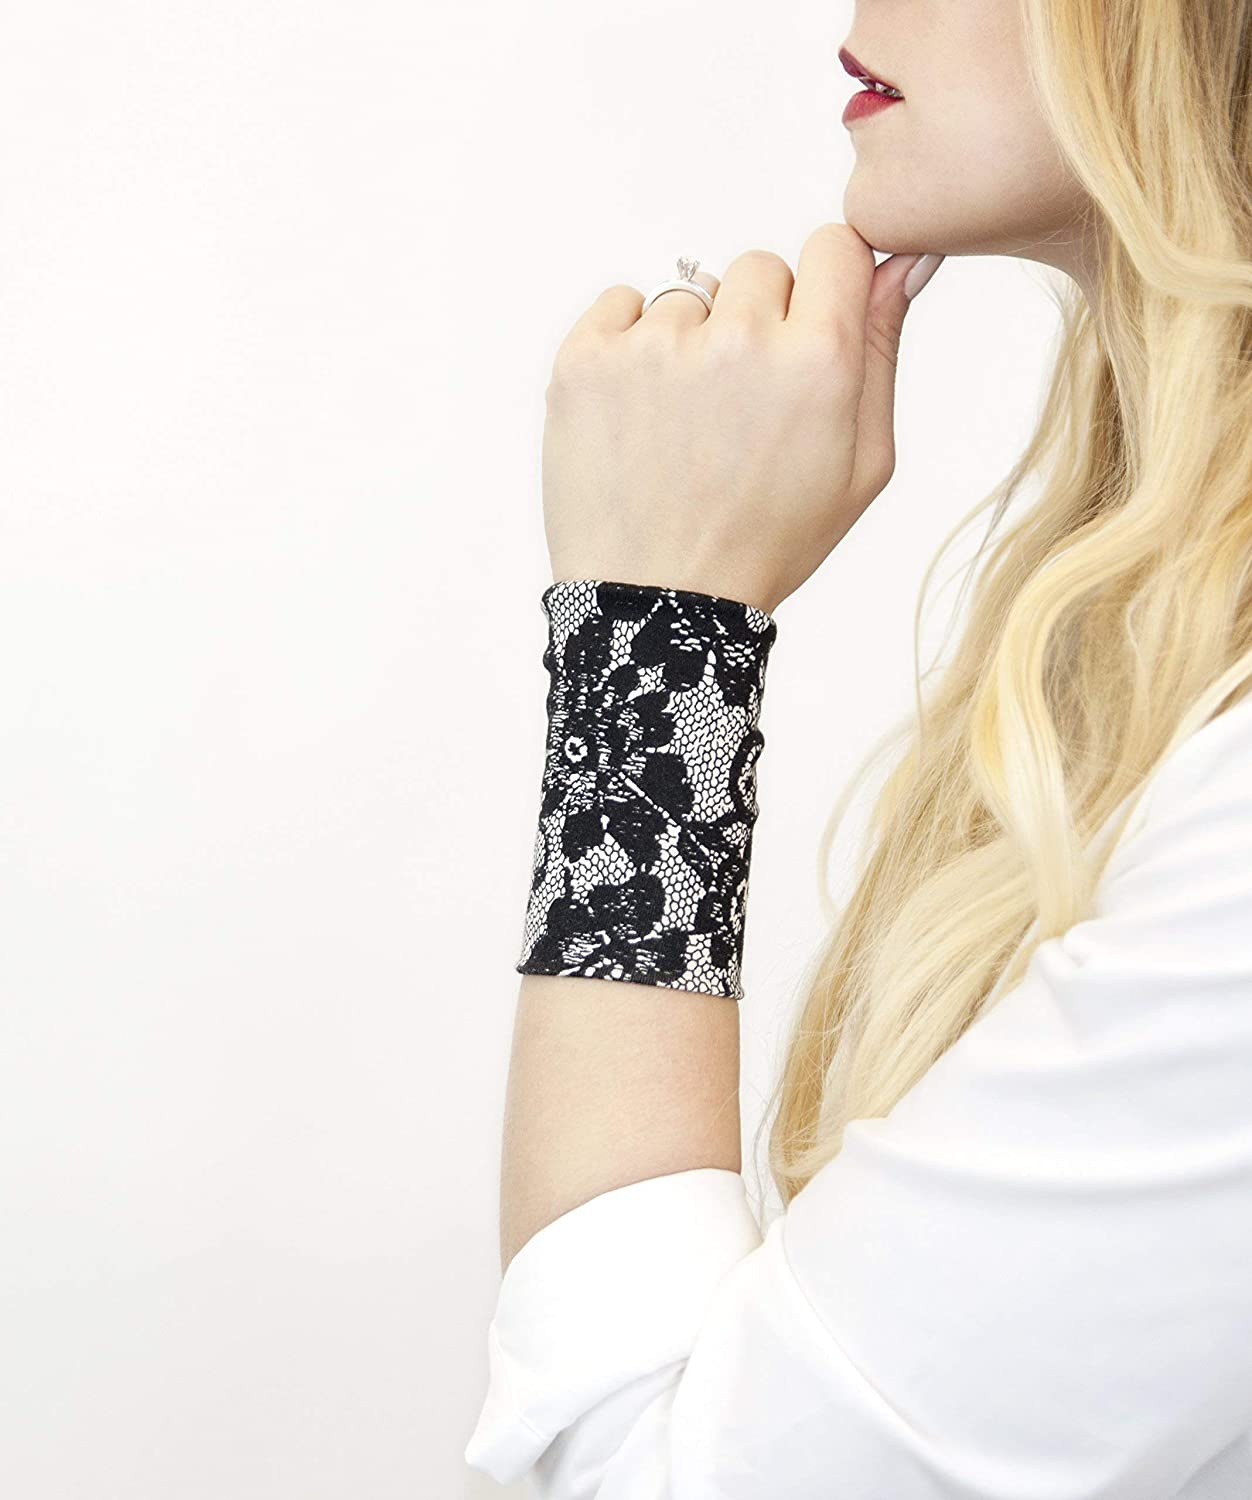 Adjustable cuff bracelet in black and white fabrics